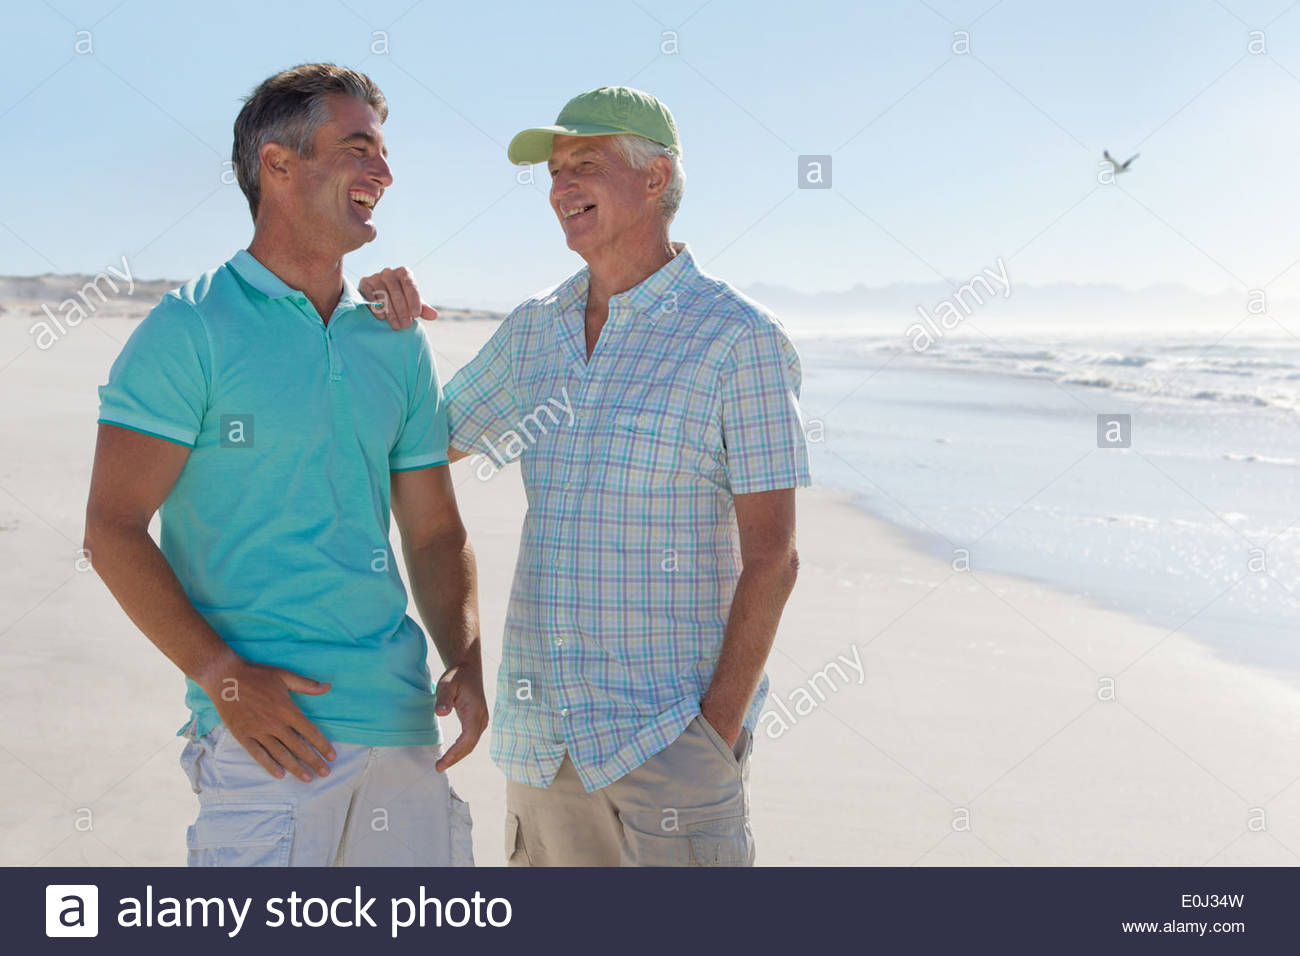 Happy father and son laughing on sunny beach - Stock Image